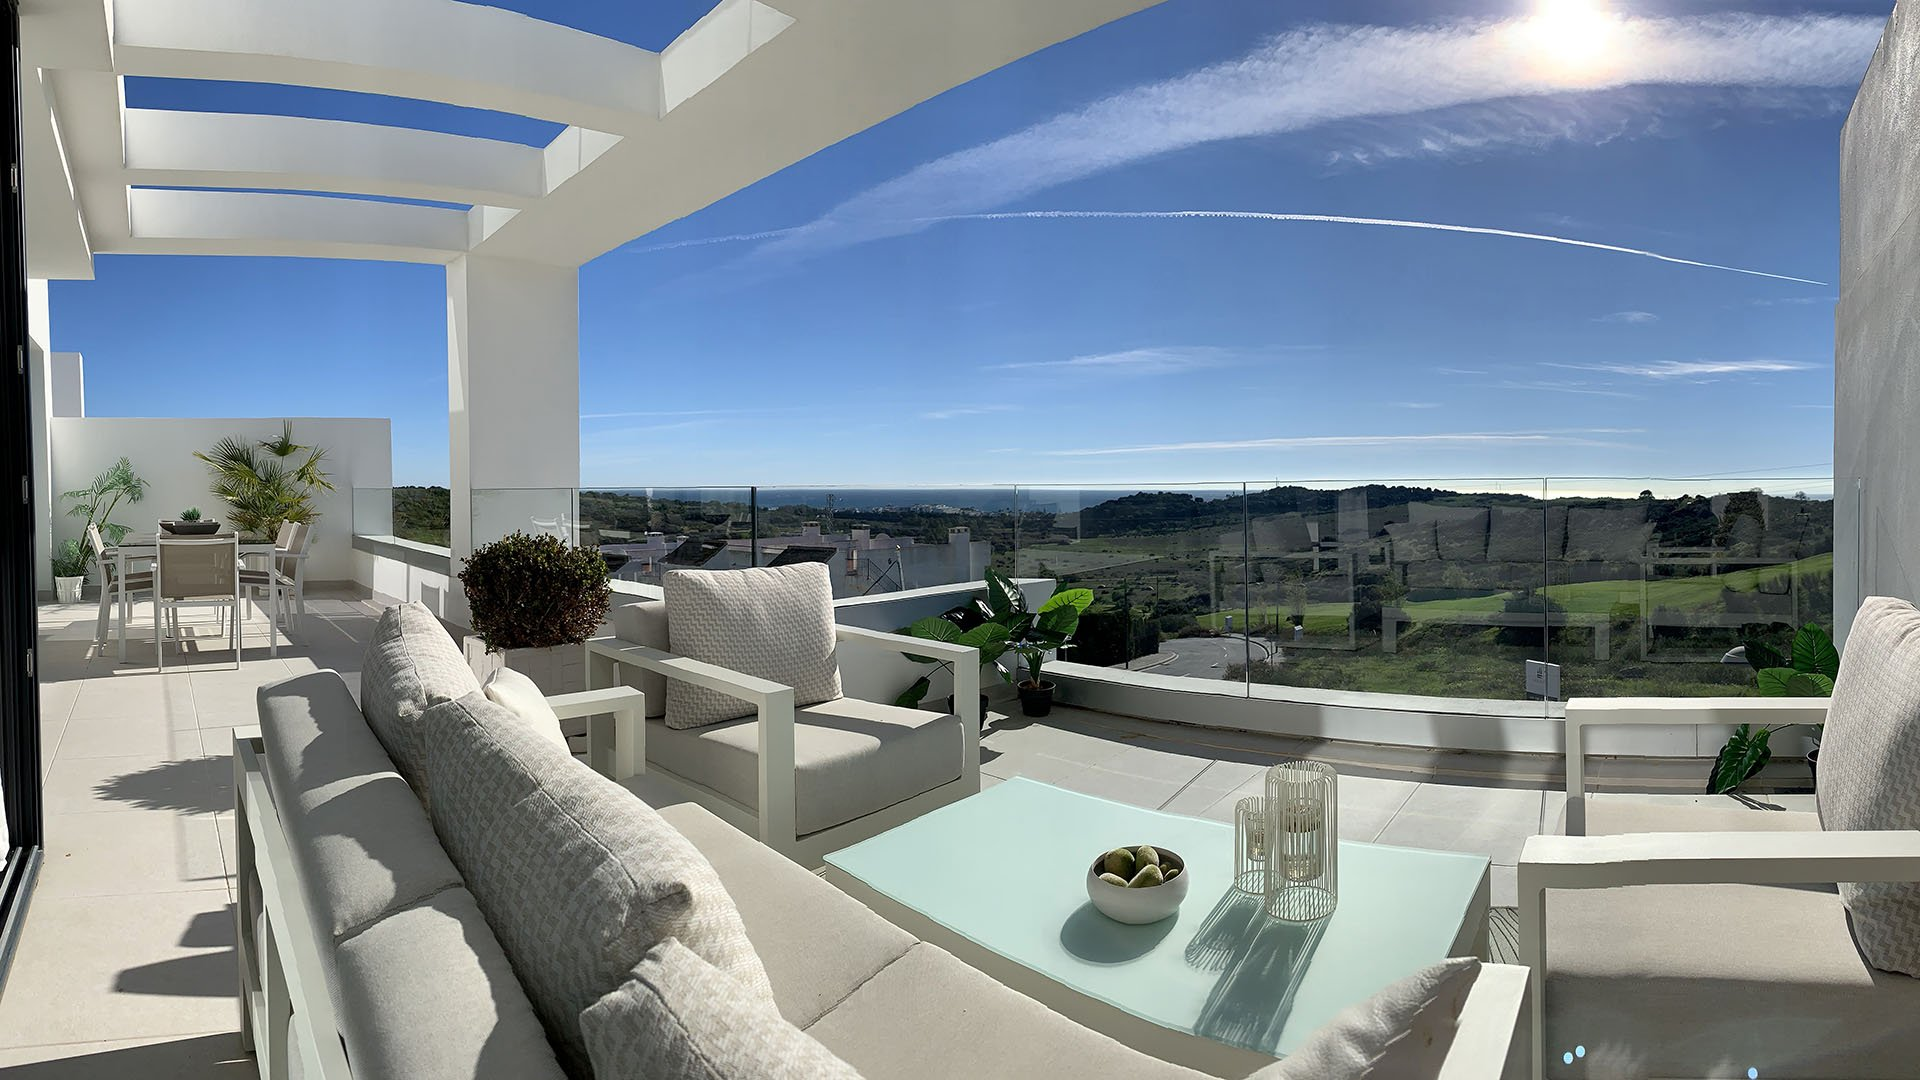 Mirador del Golf: Apartments with stunning views in the golf of Estepona